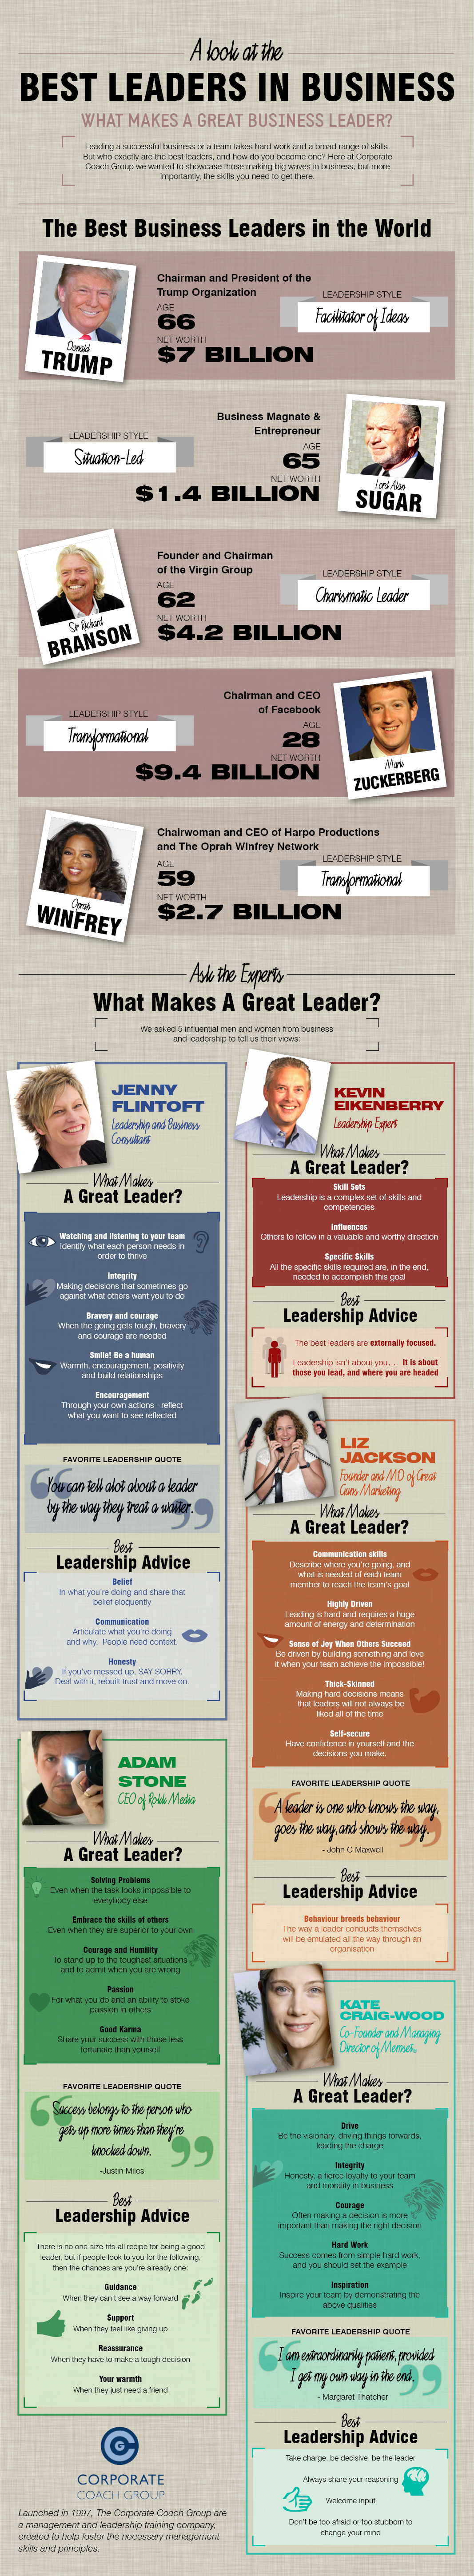 Top Business Leaders and What Makes them